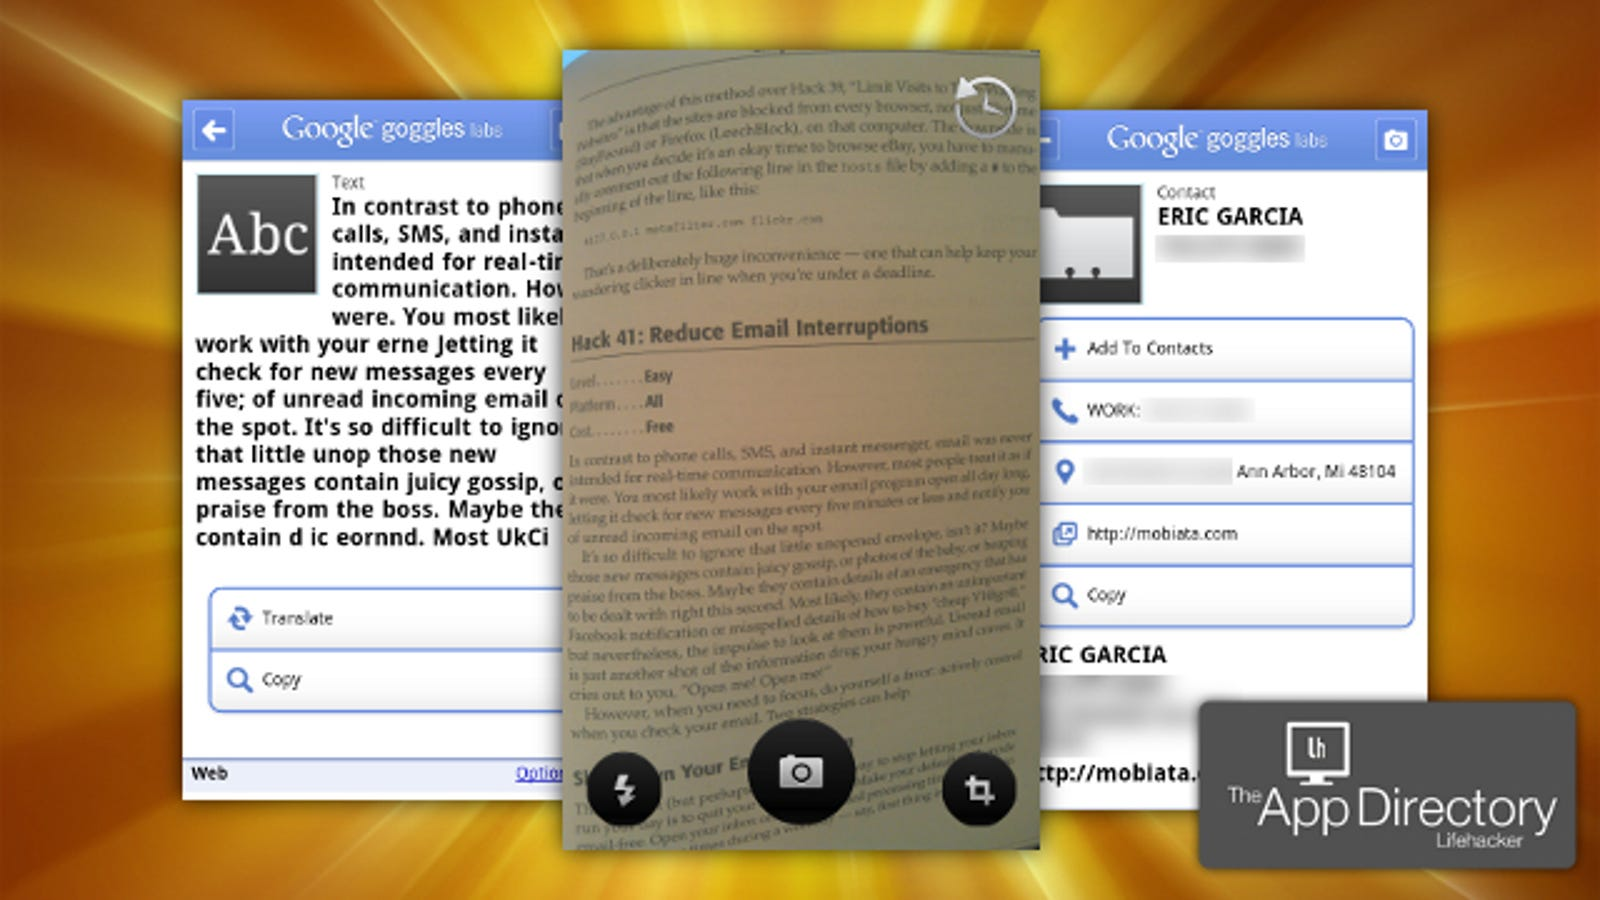 The Best Image-to-Text App for Android